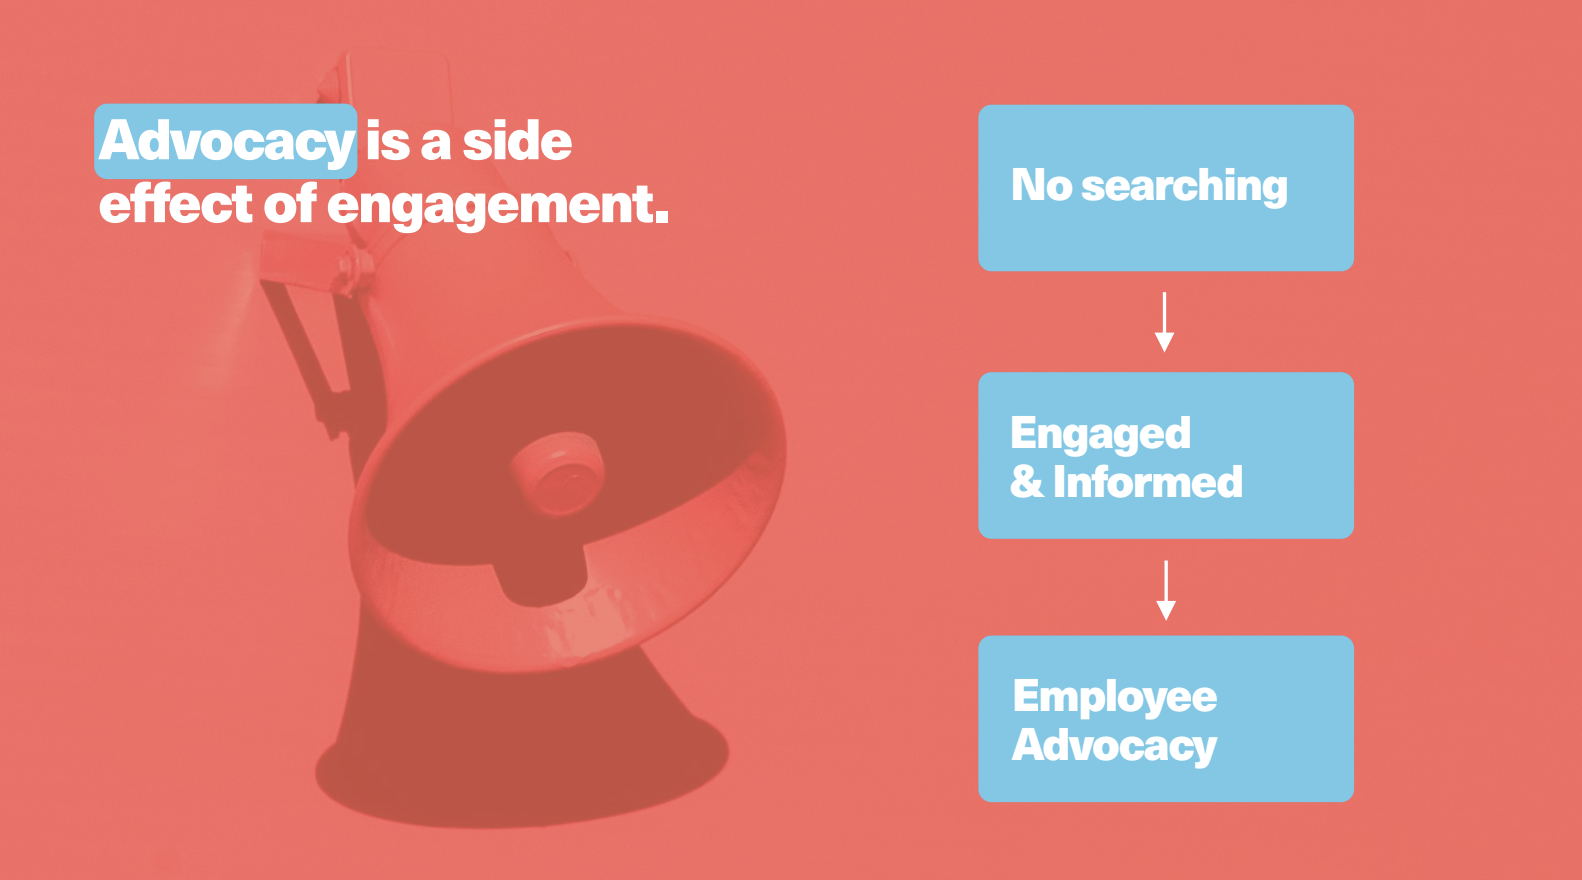 employee-advocacy-on-social-media-and-content-distribution